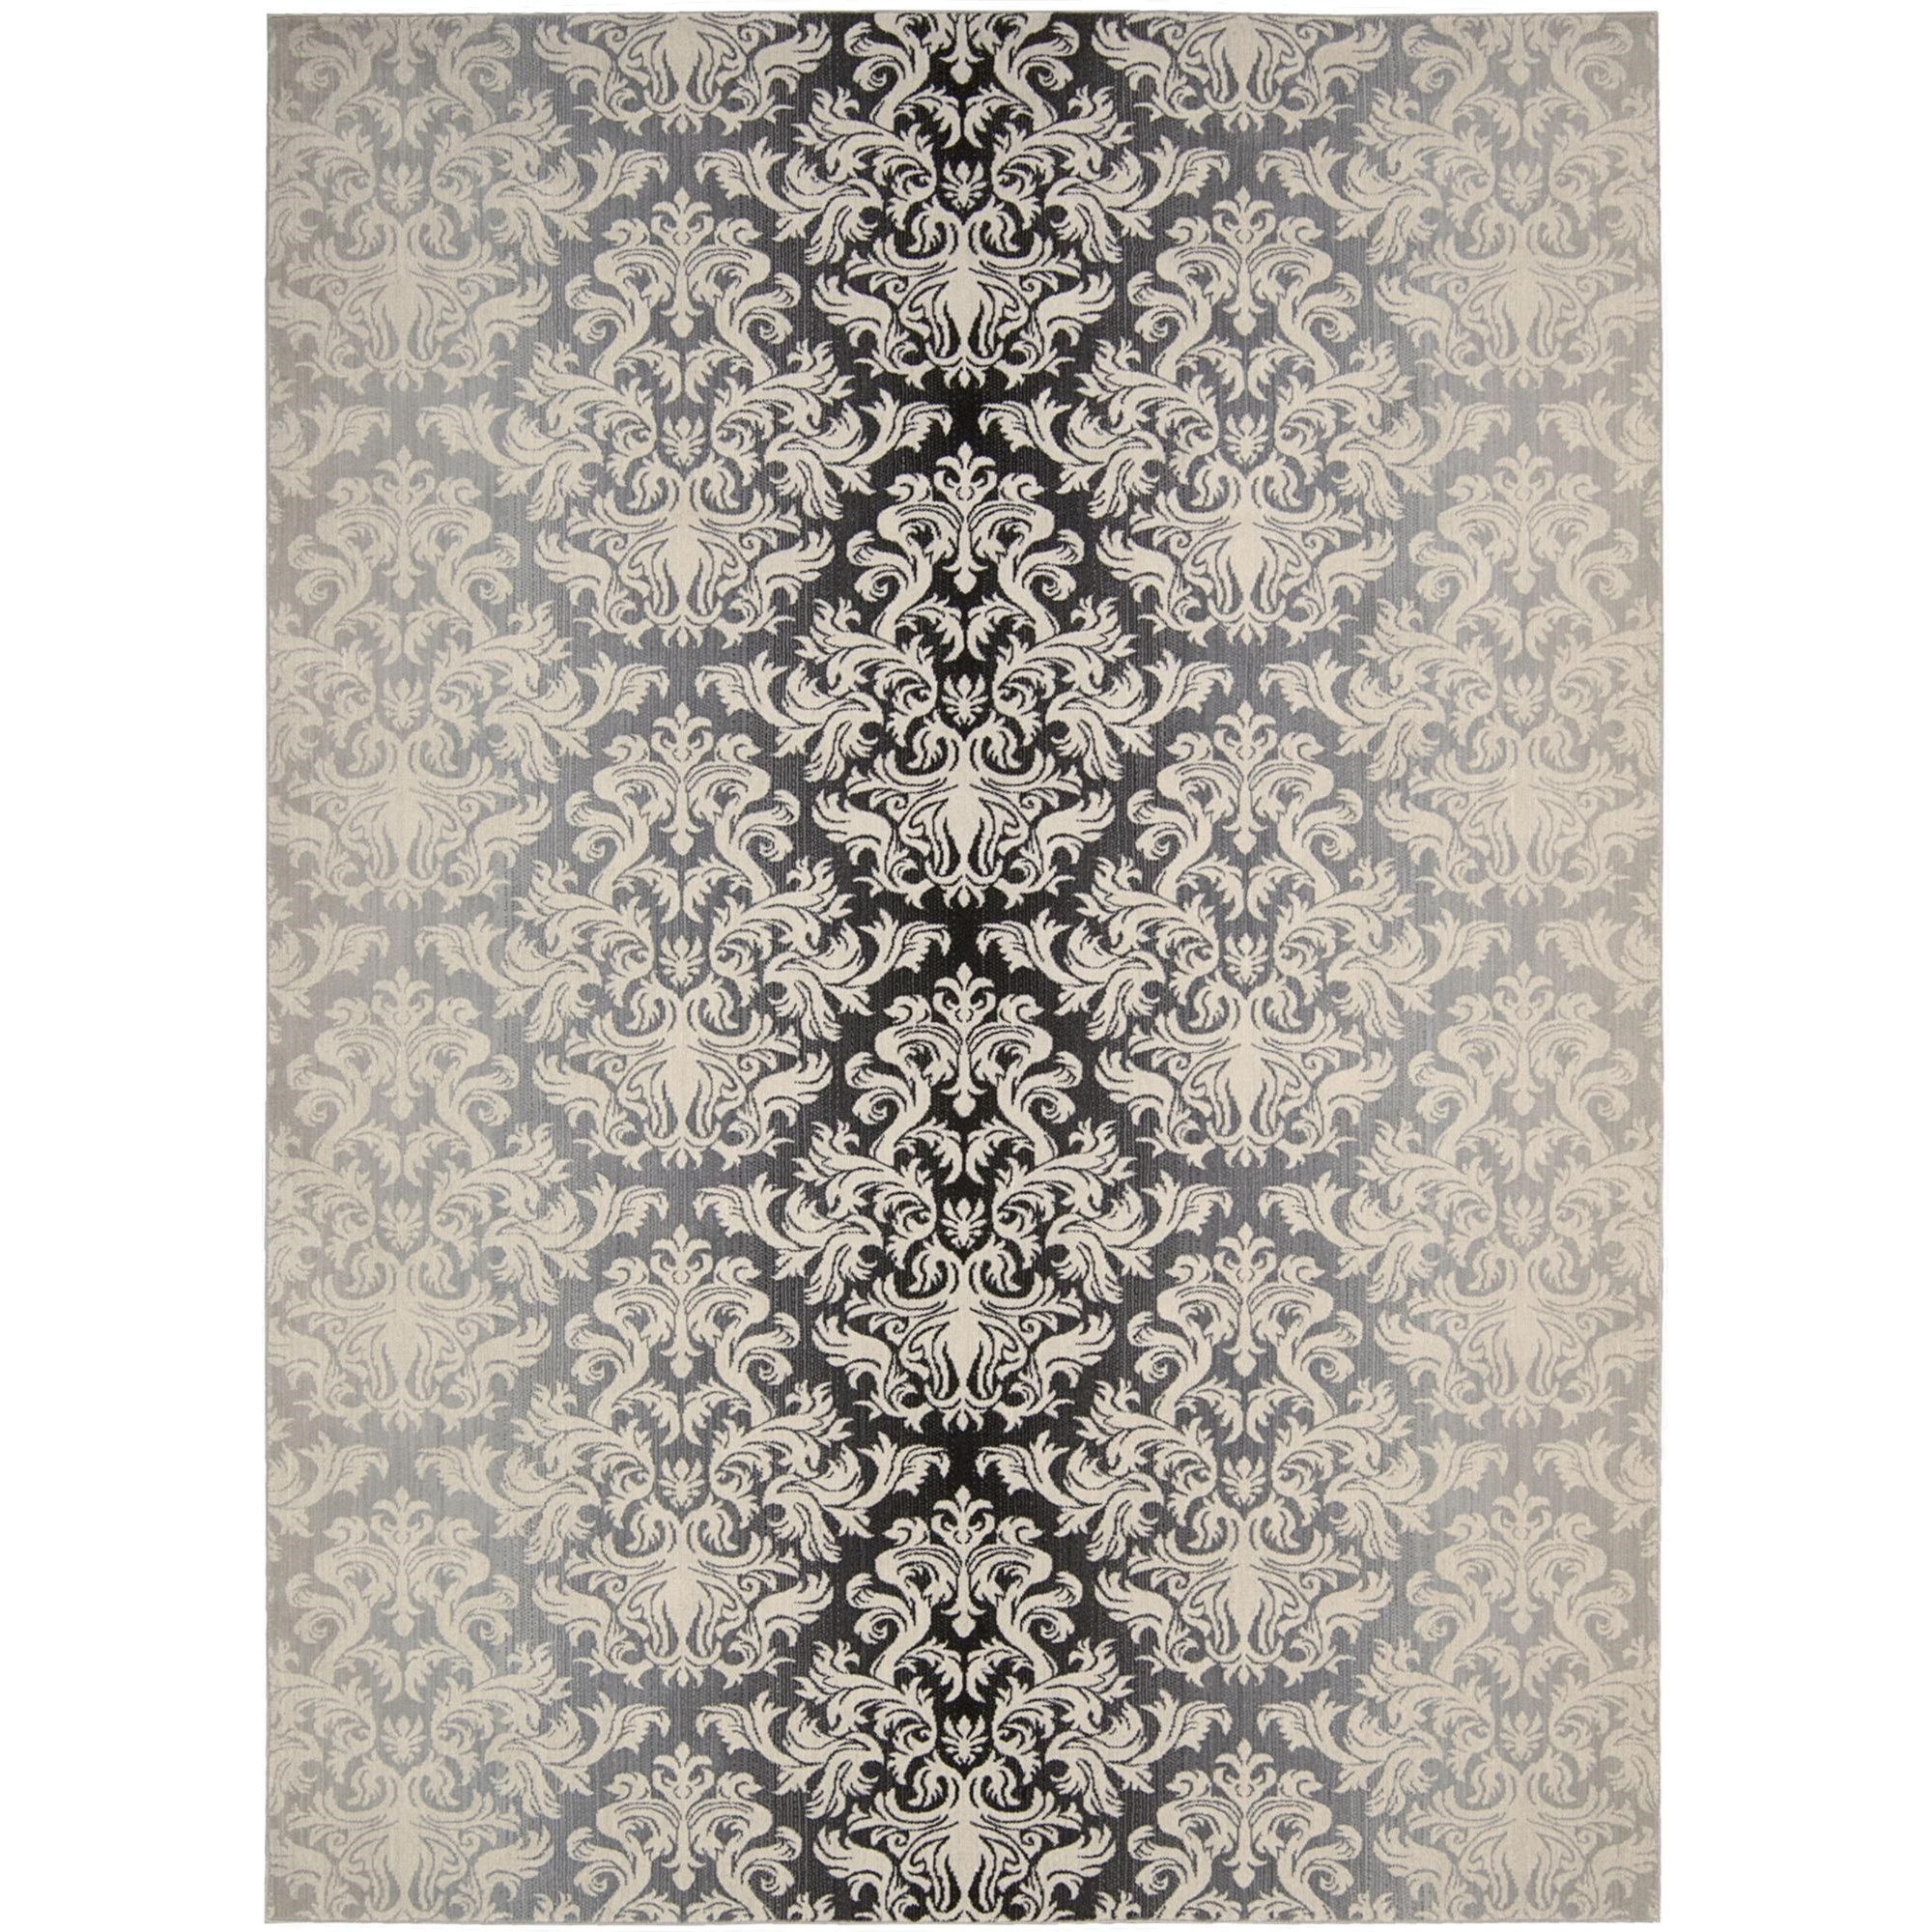 "Nourison Riviera 2' x 2'9"" Charcoal Area Rug - Item Number: 27160"